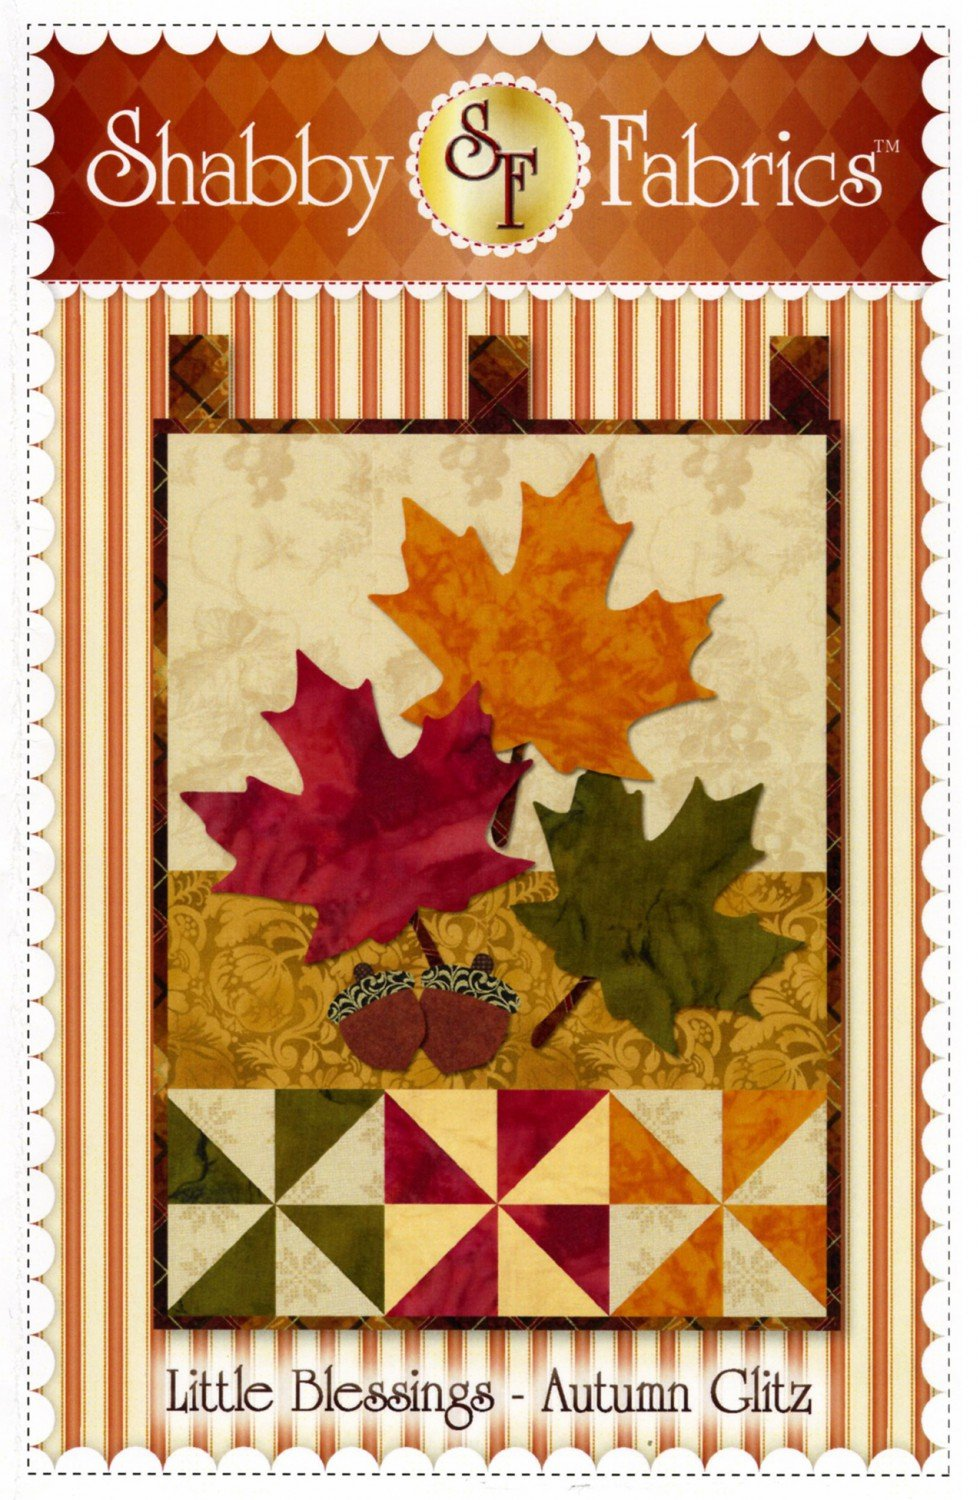 Little Blessings Autumn Glitz Wall Hanging Quilt Pattern from Shabby Fabrics